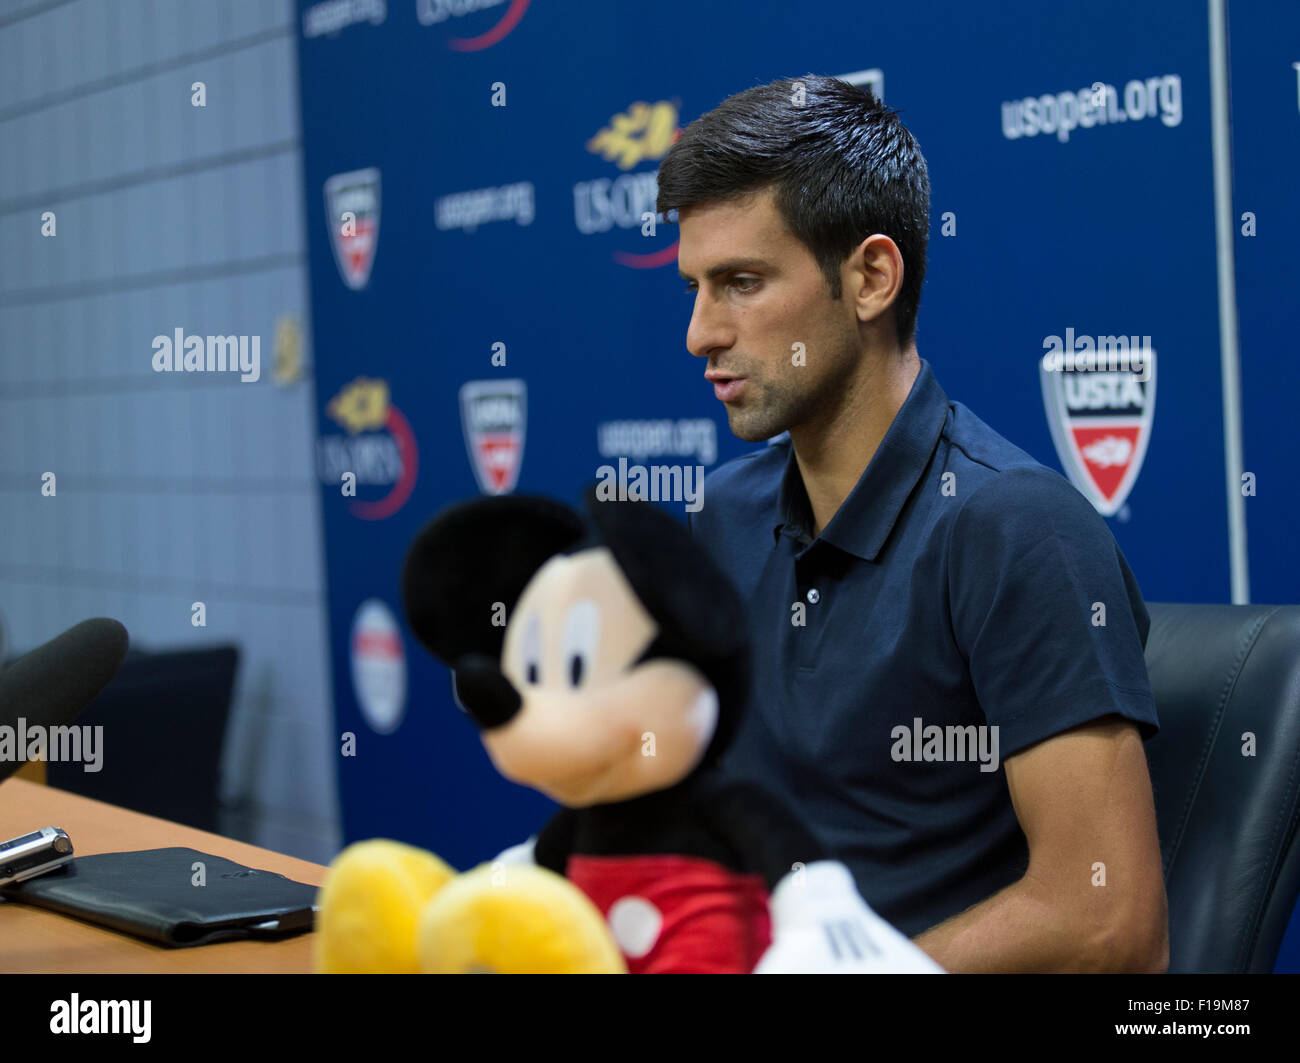 New York, NY - August 29, 2015: Novak Djokovic of Serbia and Mickey Mouse attend press conference at US Open Championship - Stock Image